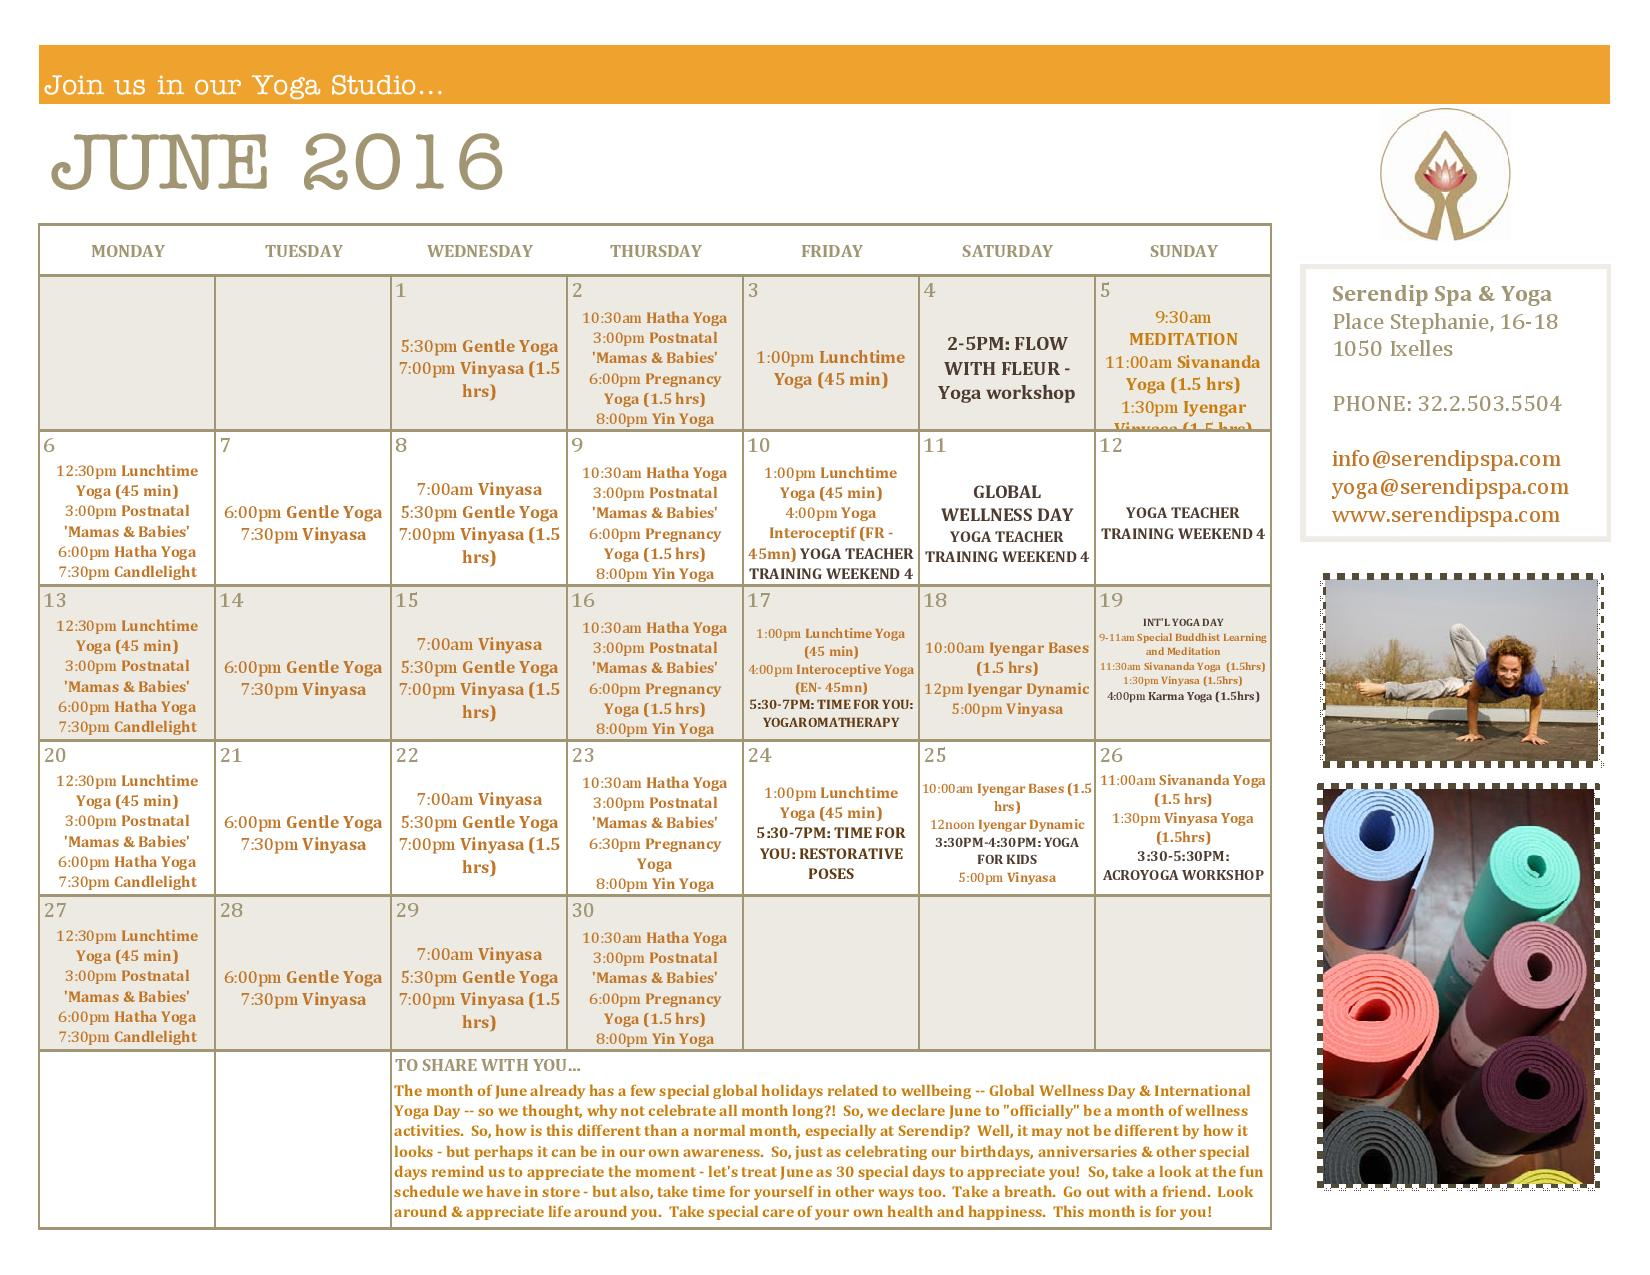 Serendip Spa and Yoga Calendar 2016_June FRONT A4-page-001.jpg